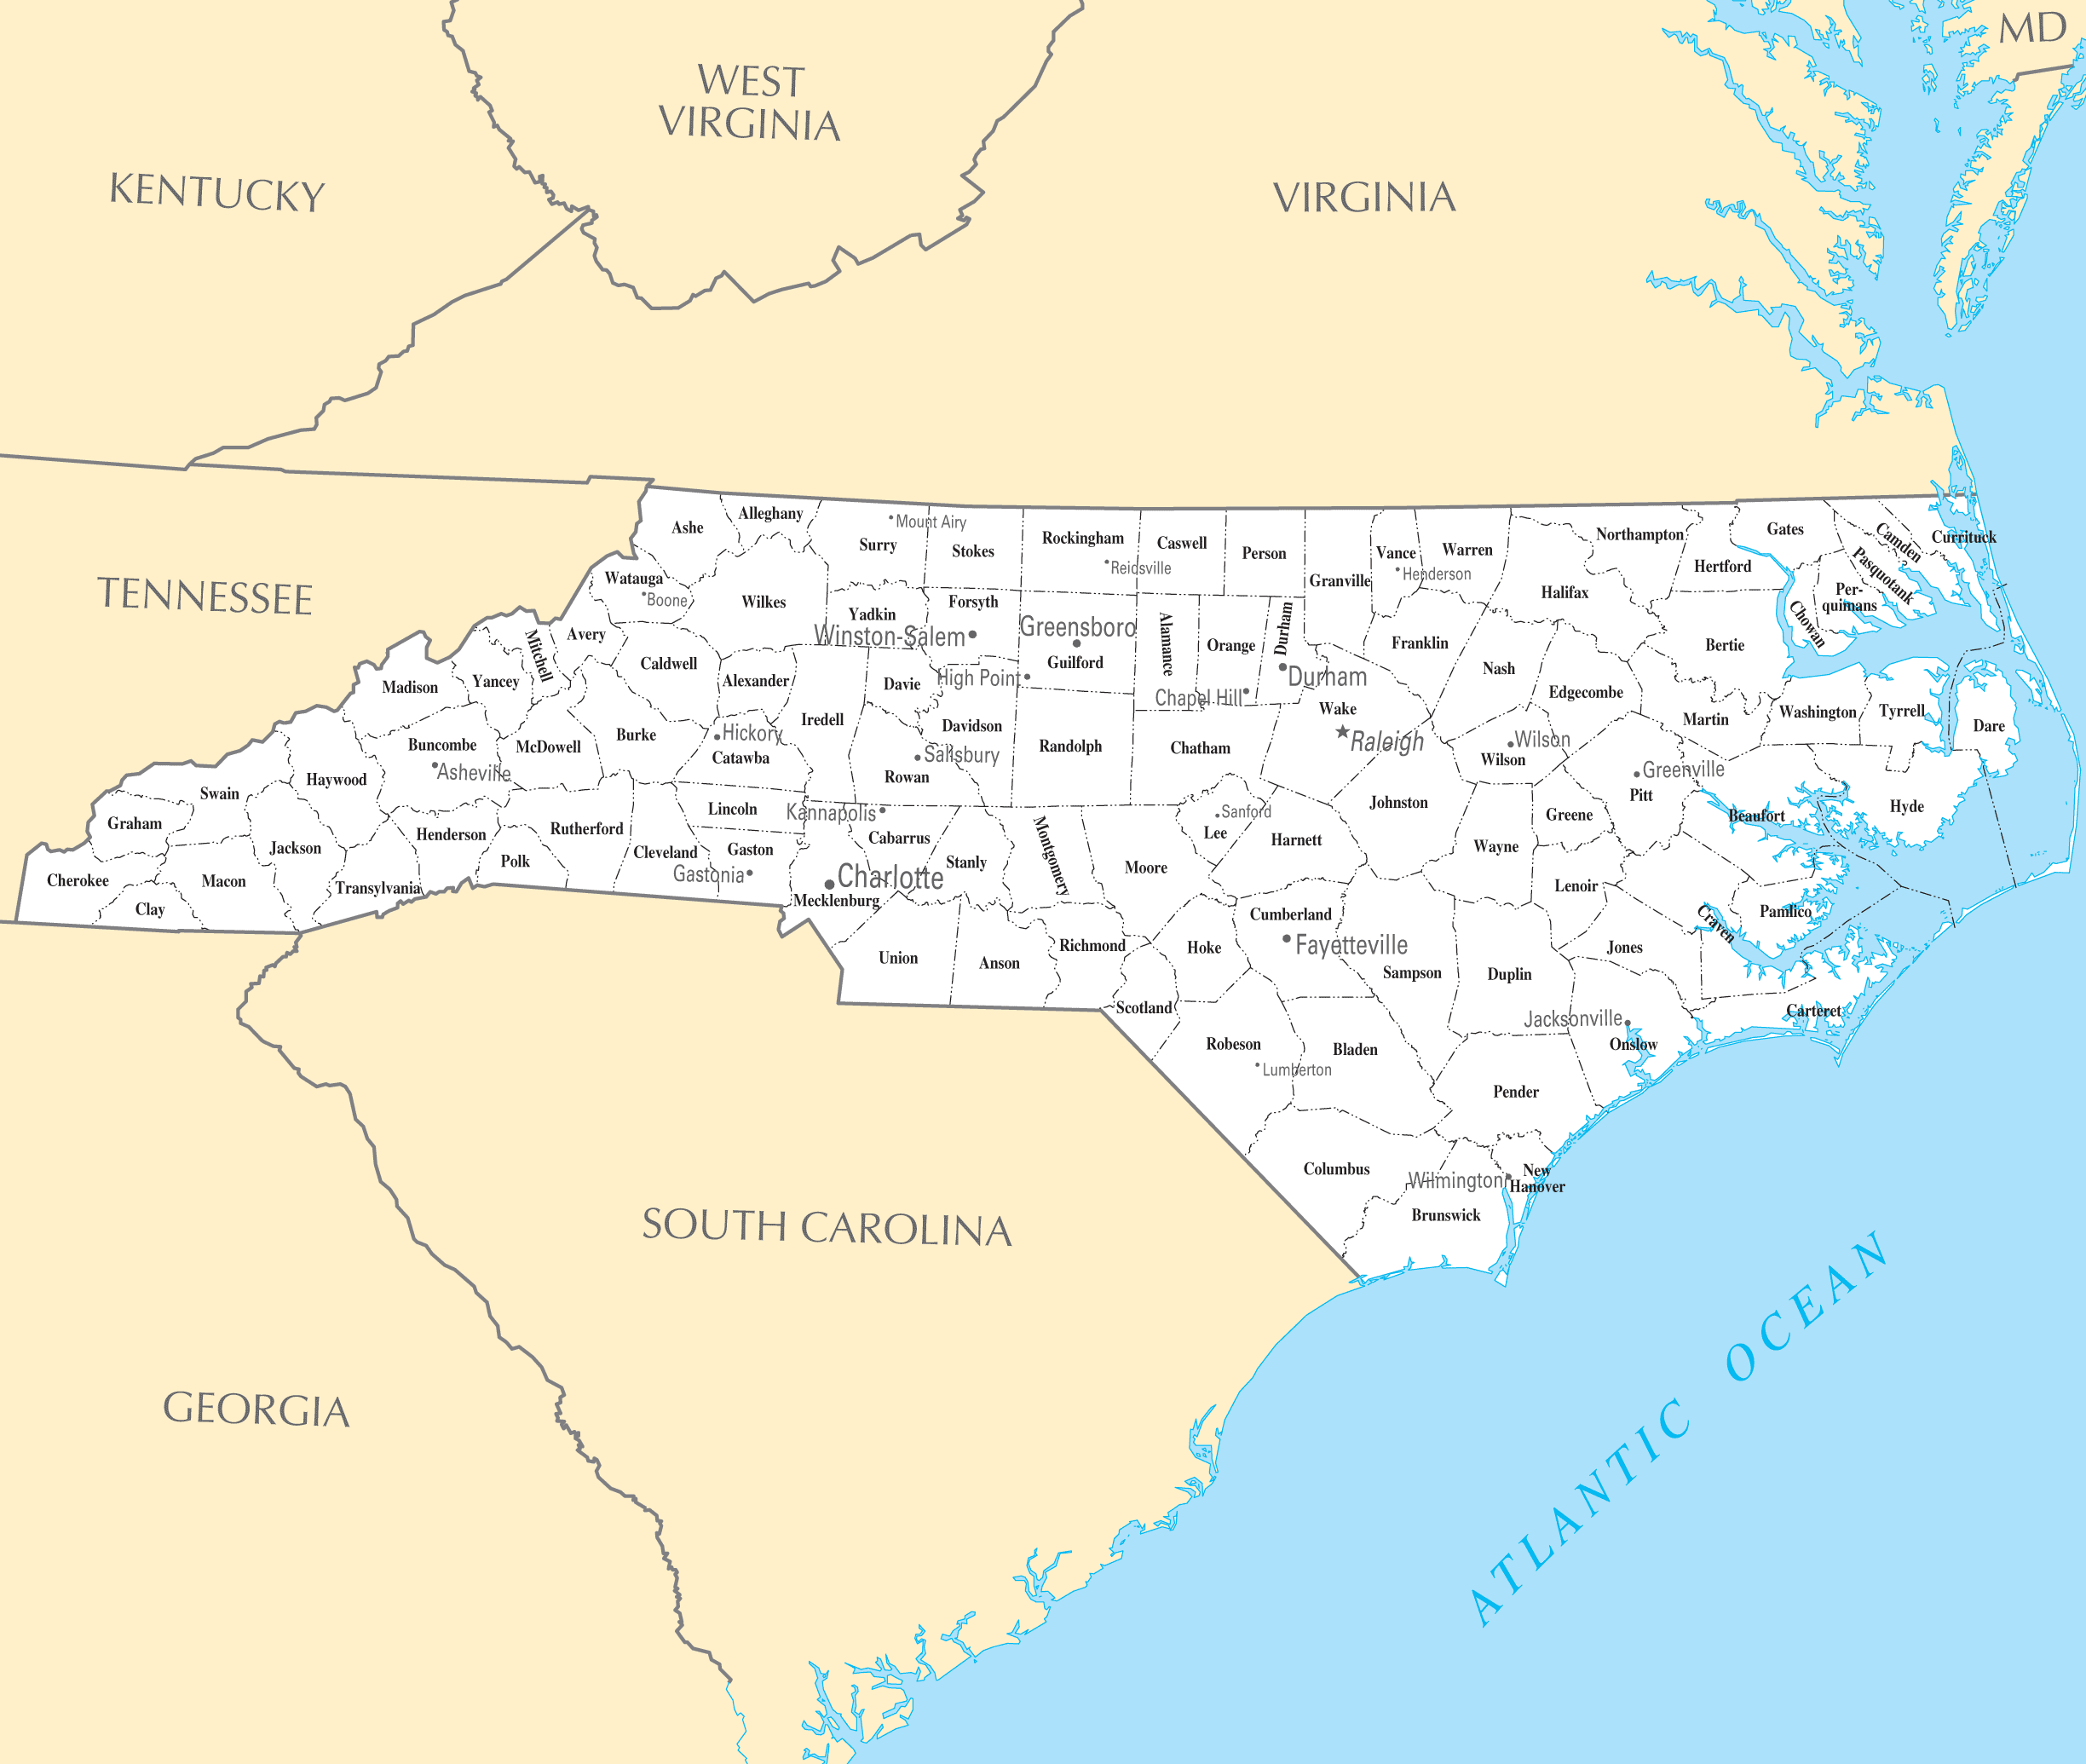 North Carolina Cities And Towns • Mapsof.net